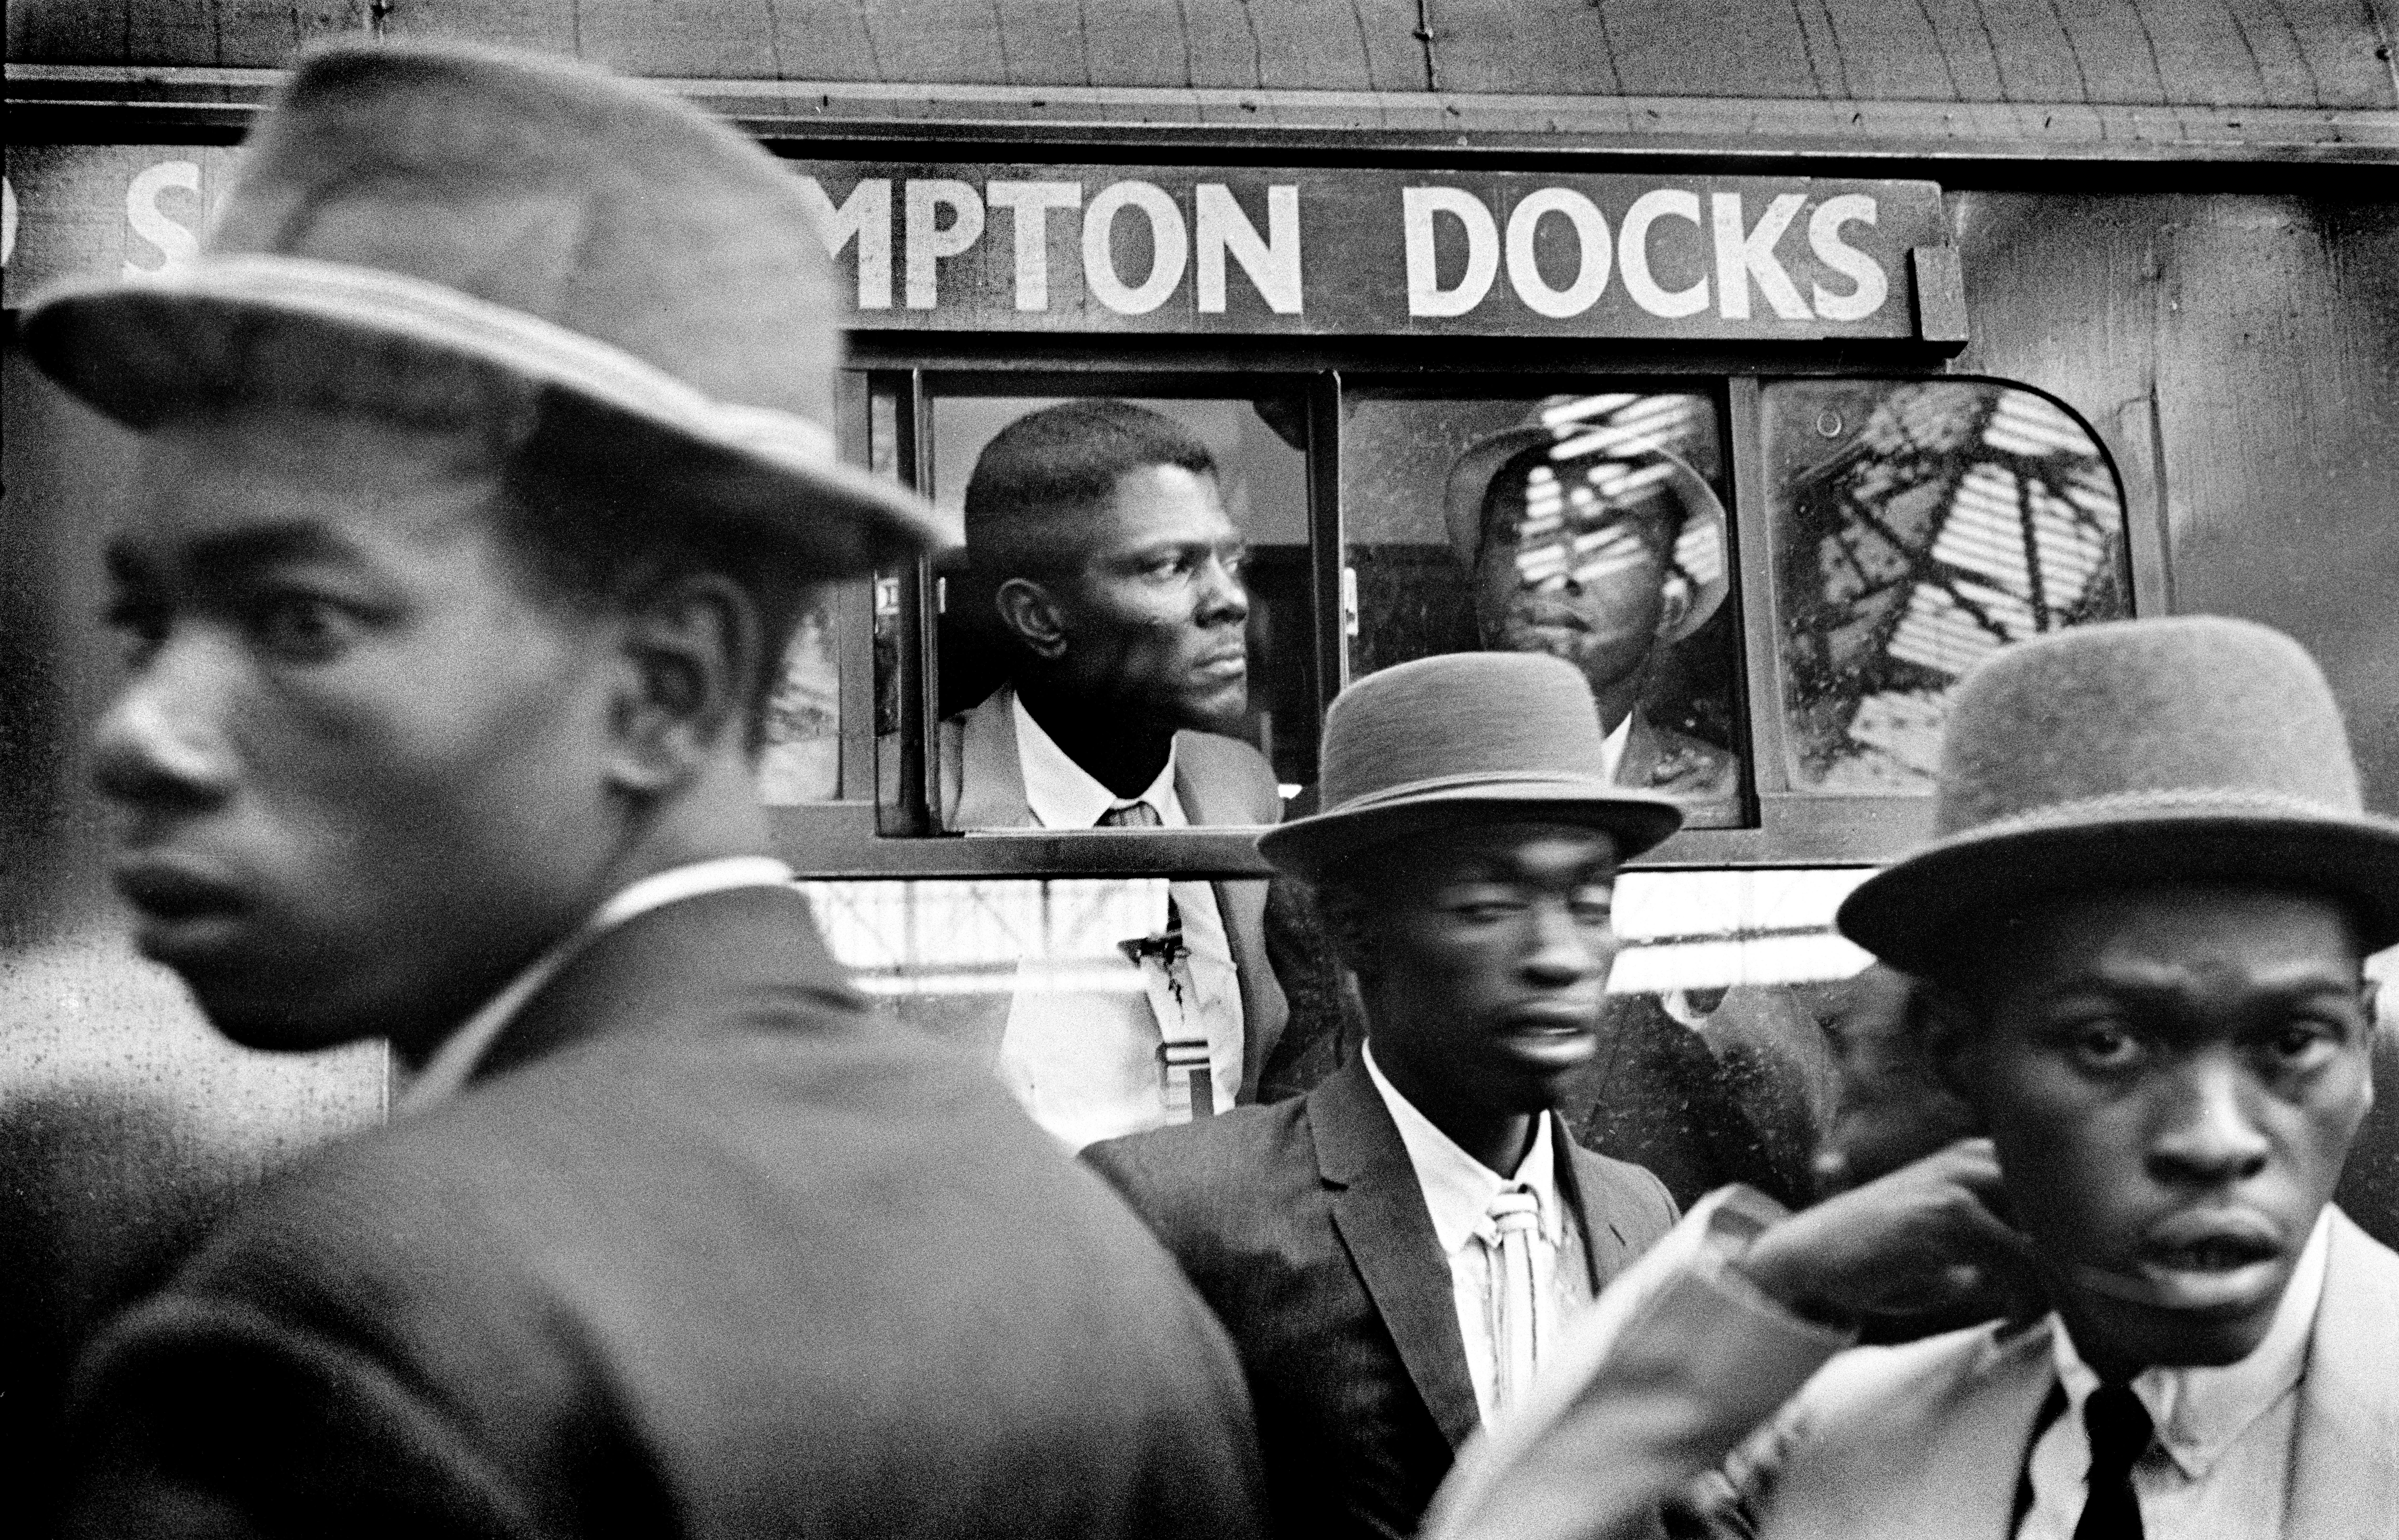 The motherland: lost images of the Windrush generation